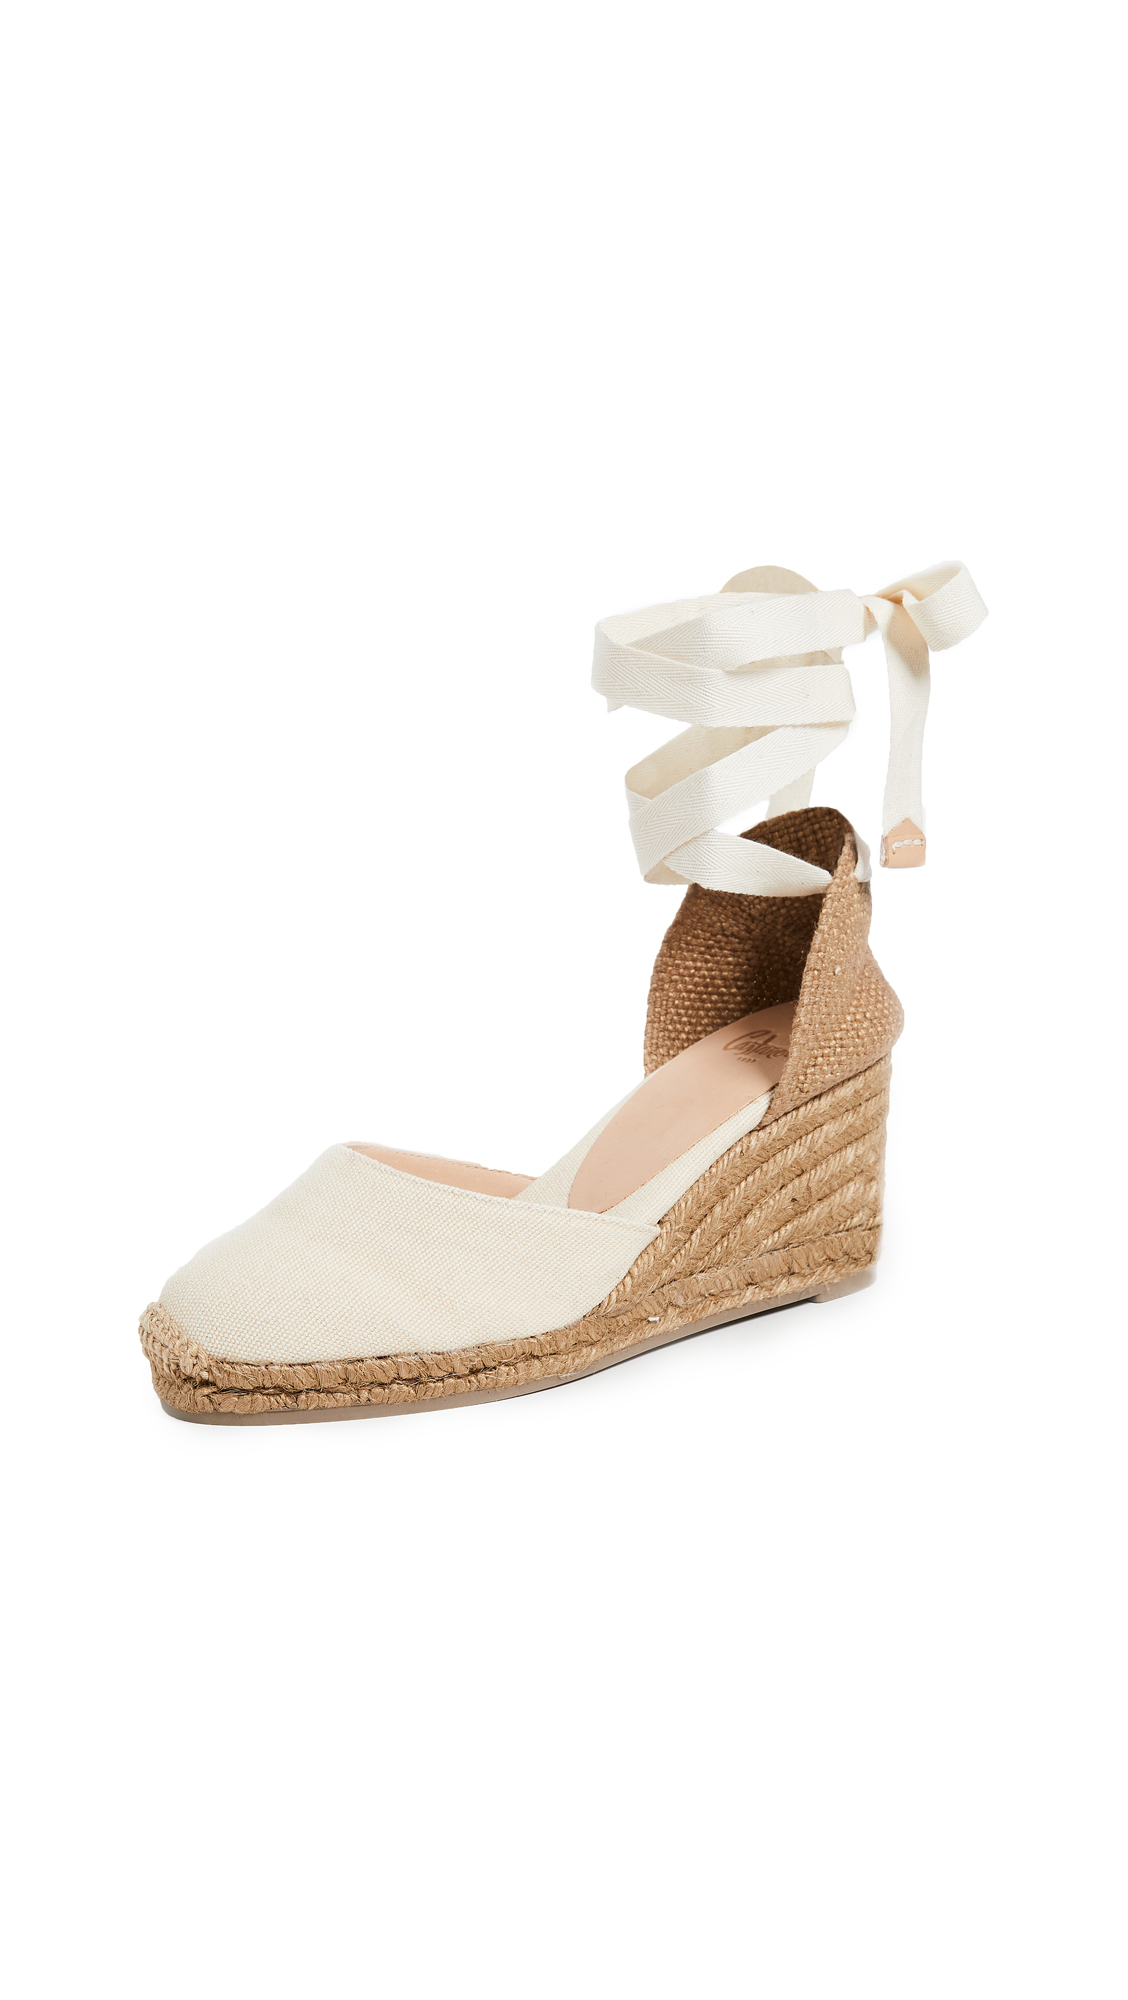 Castaner Carina 85mm Wedges - Nude